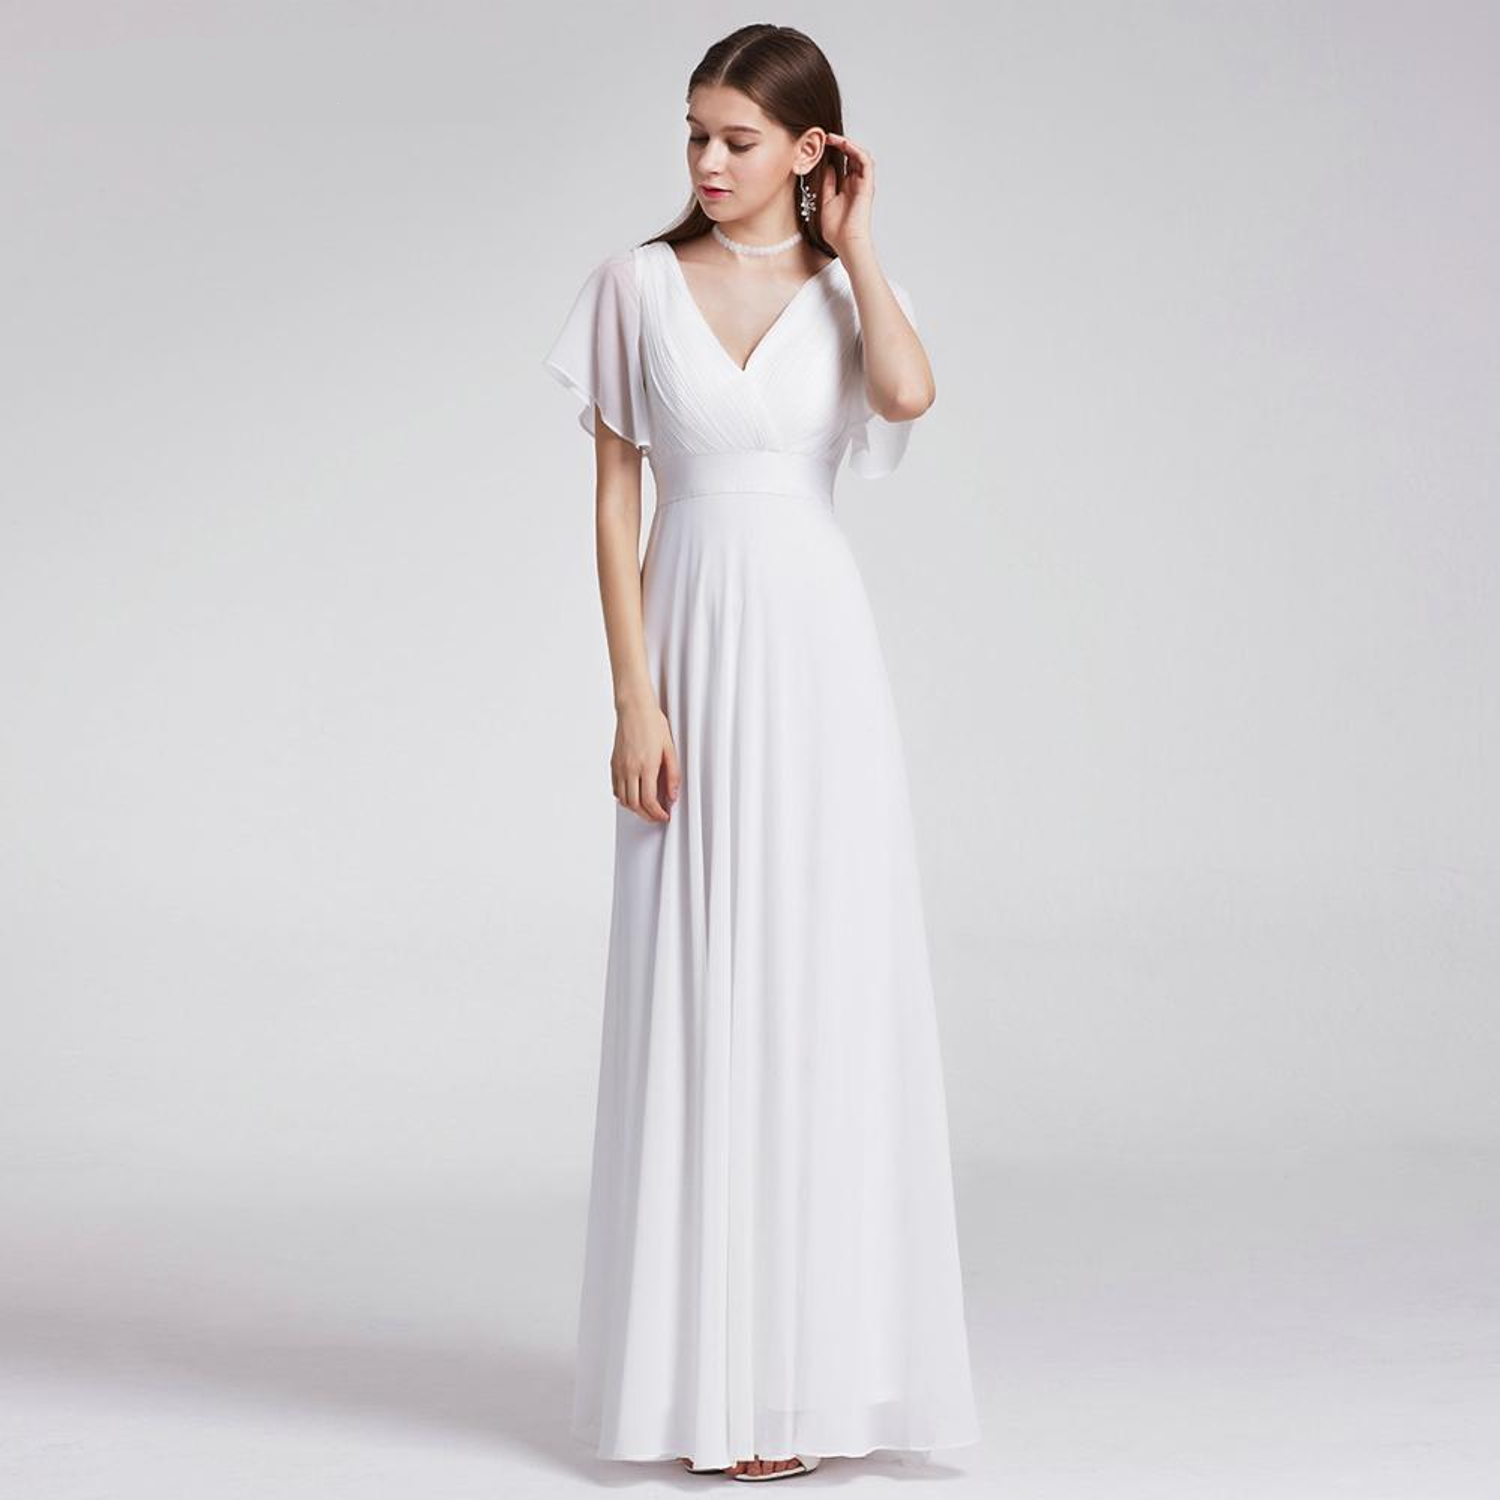 How to Look Stylish and Beautiful in Casual Wedding Dresses ...